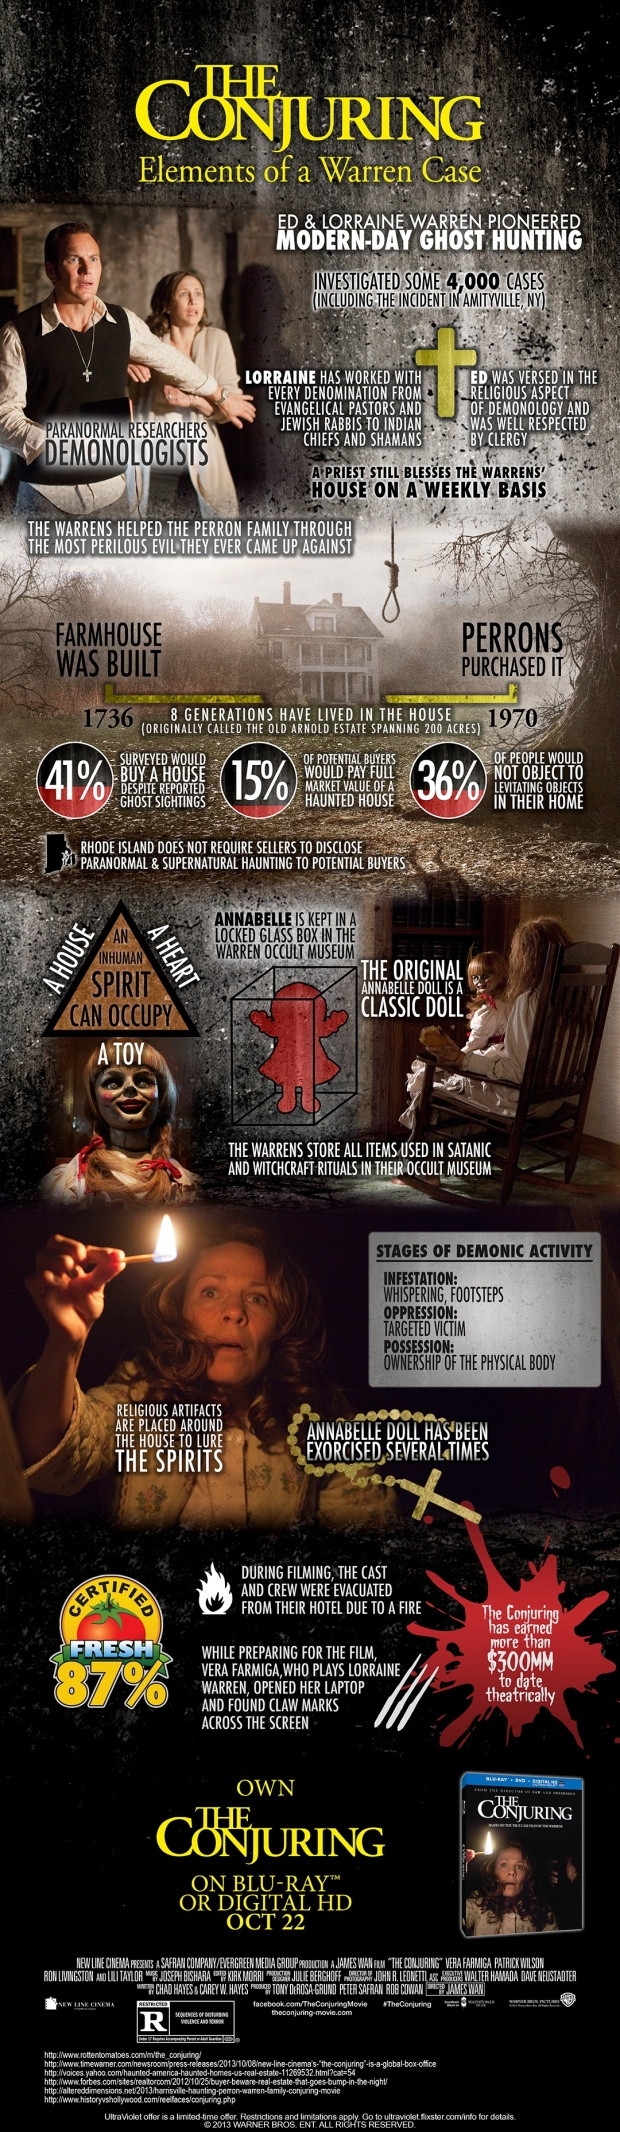 Conjuring_Infographic_10_21_13